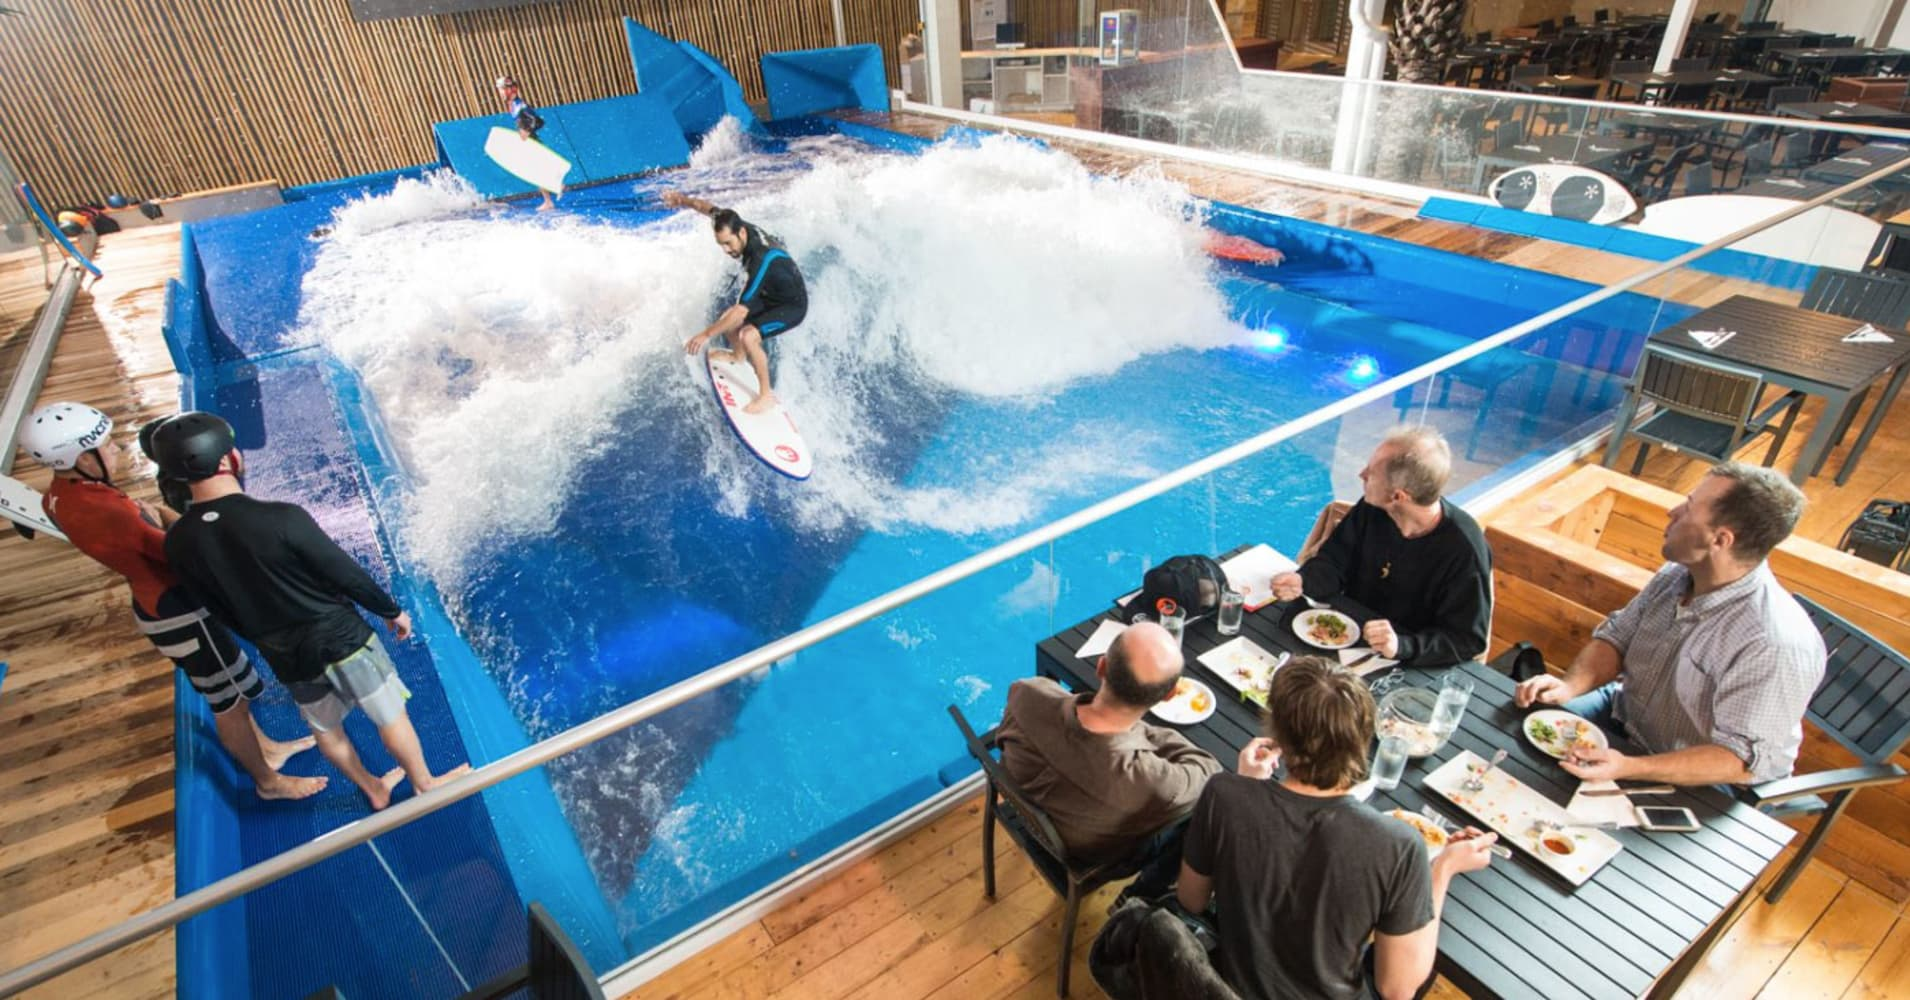 Retails New Trick Using Surfing To Lure Shoppers